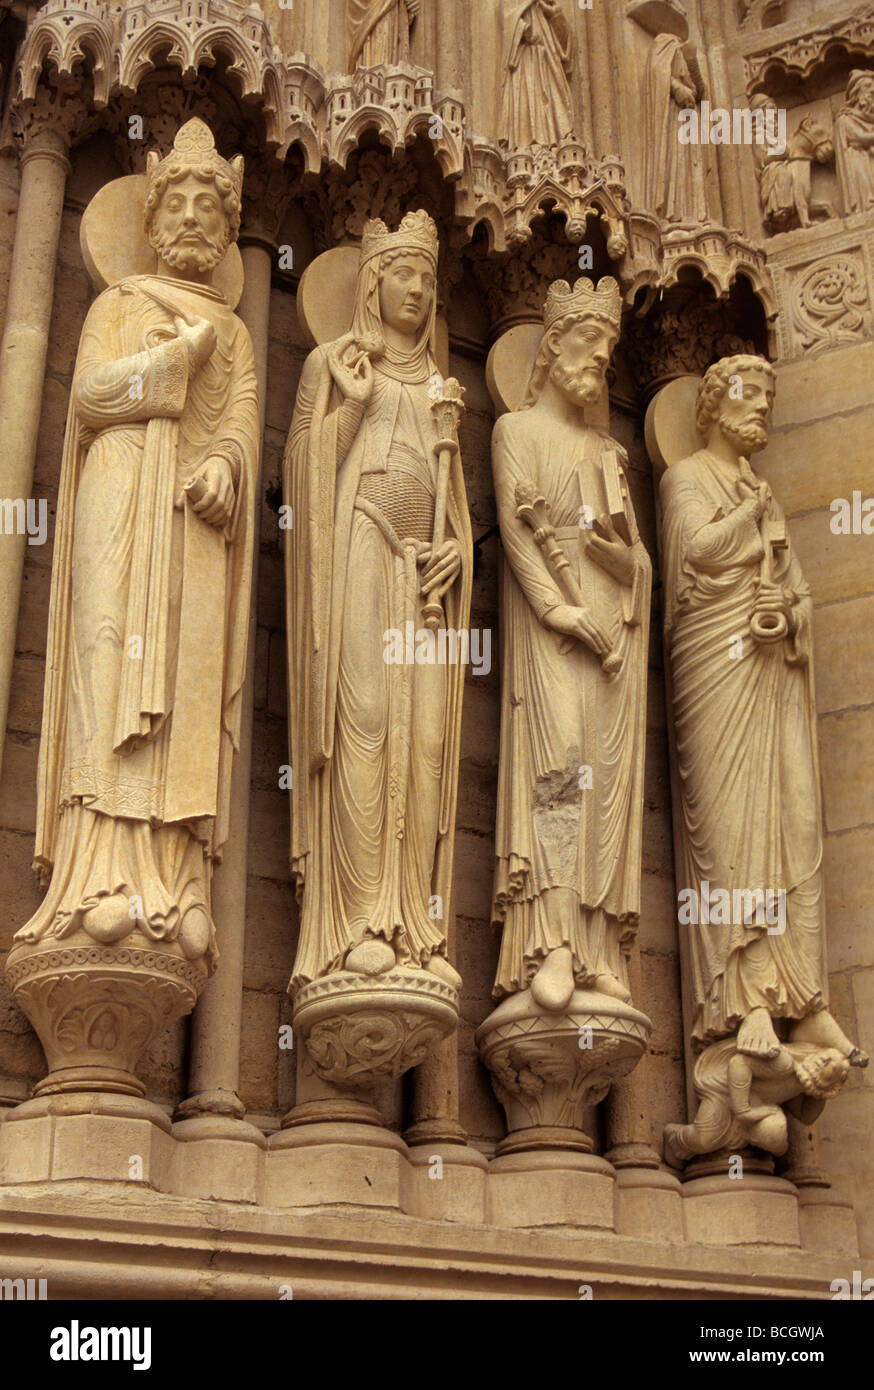 Staues at Portal of Sainte Anne at Notre Dame in Paris France Stock Photo